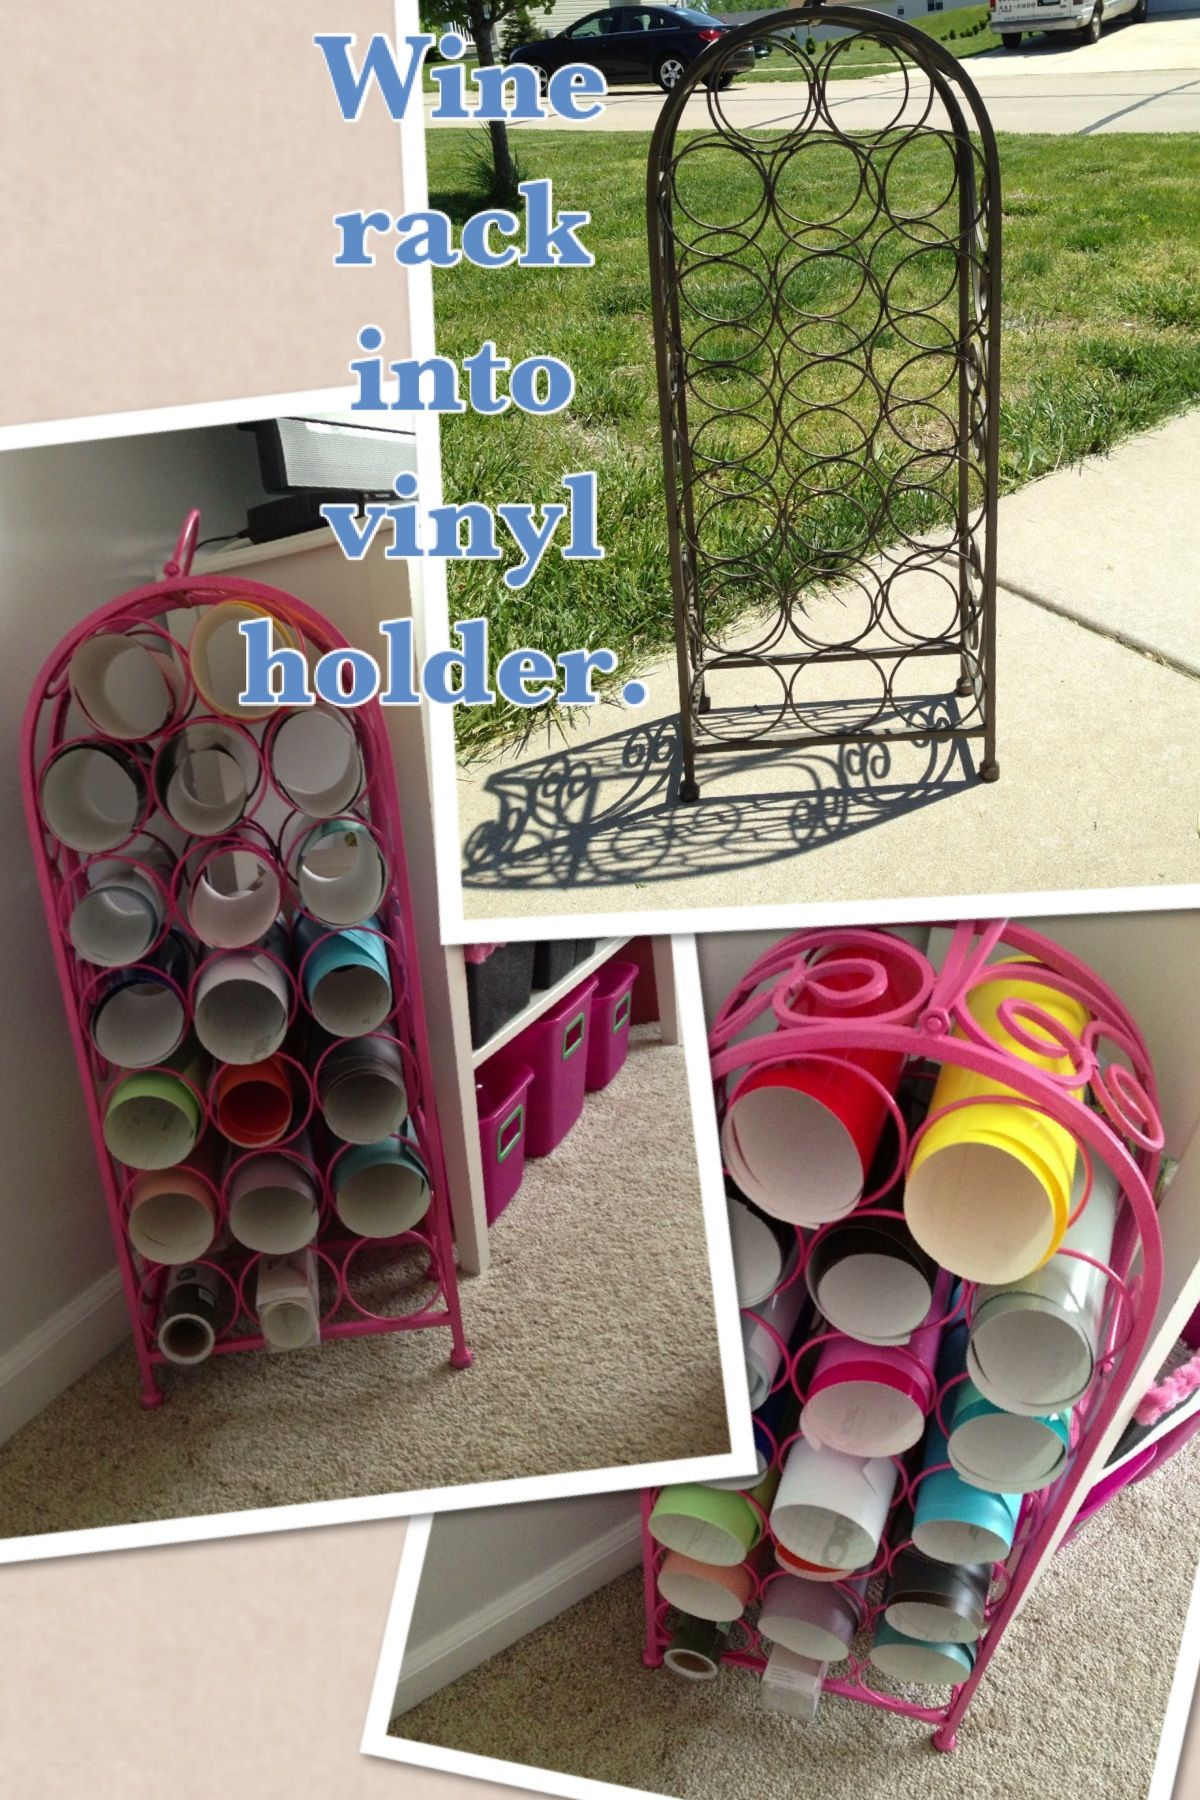 Pin By Monica Caldwell On Sew Crafty Craft Room Craft Room